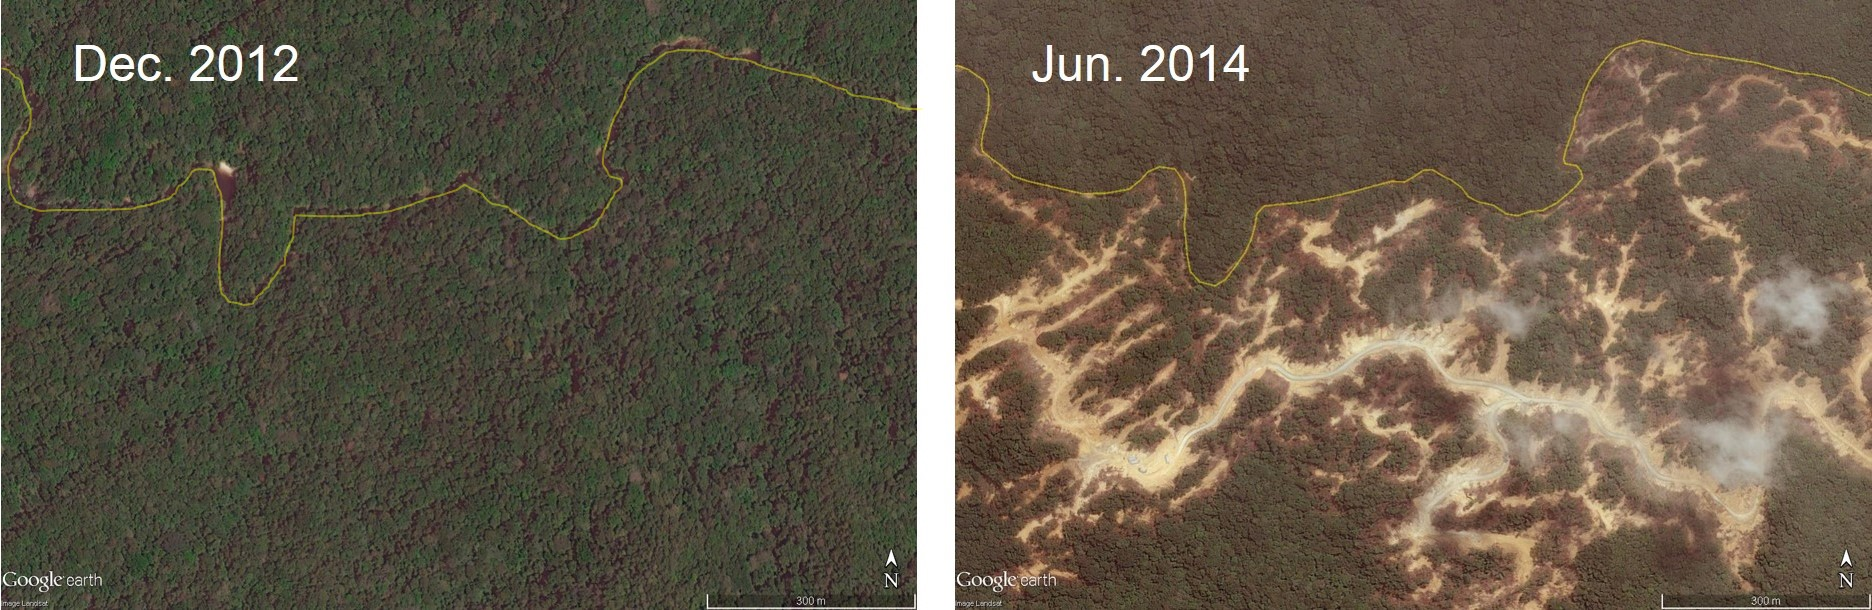 Satellite images of deforestation in Shin Yan T/3342 concession. Sarawak logging